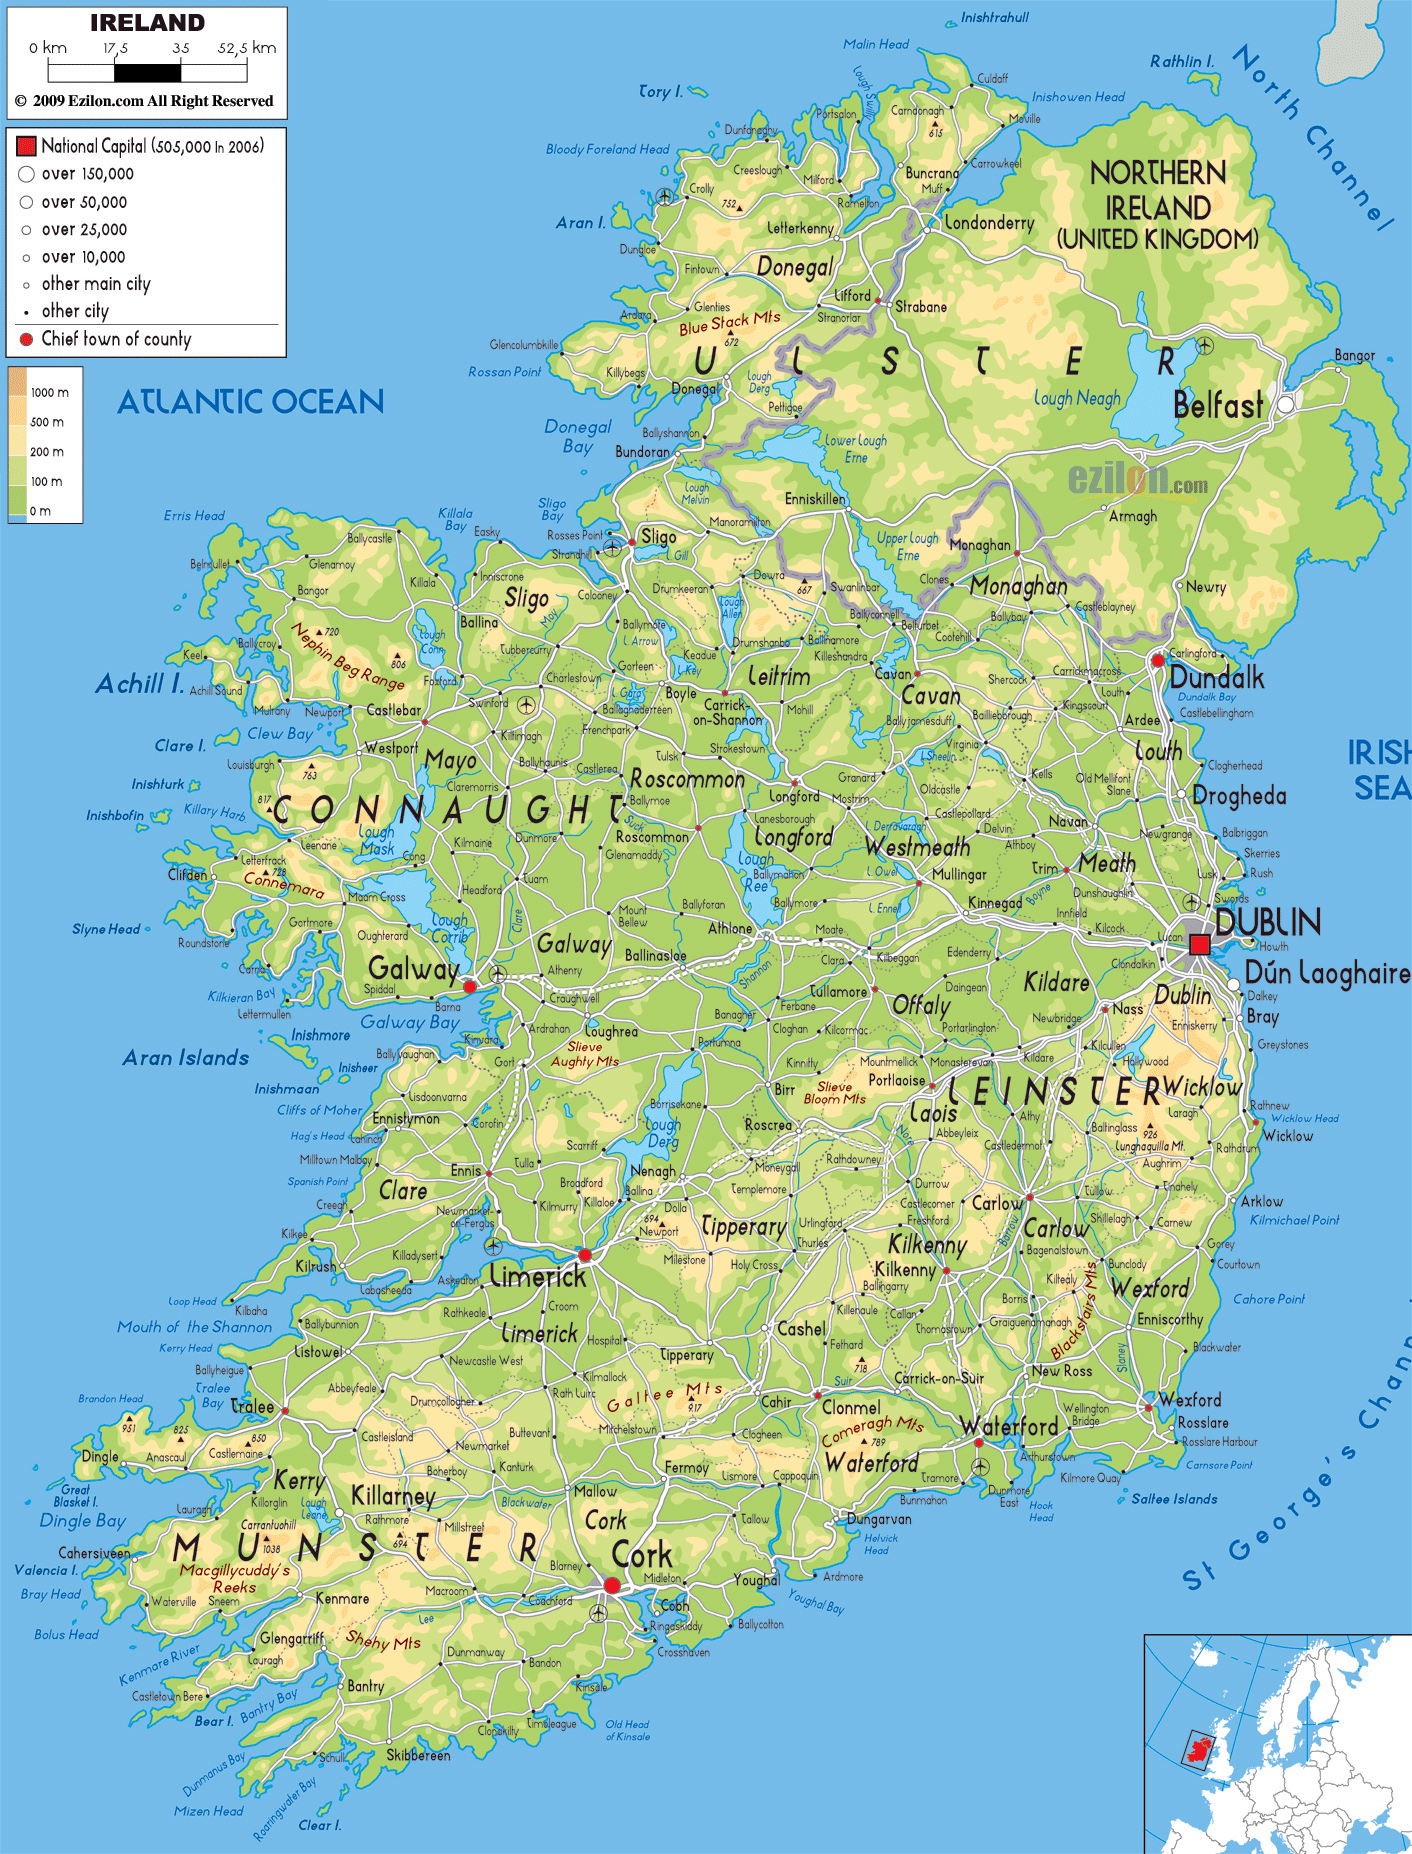 Ireland Map Of Europe.Large Physical Map Of Ireland With Roads Cities And Airports